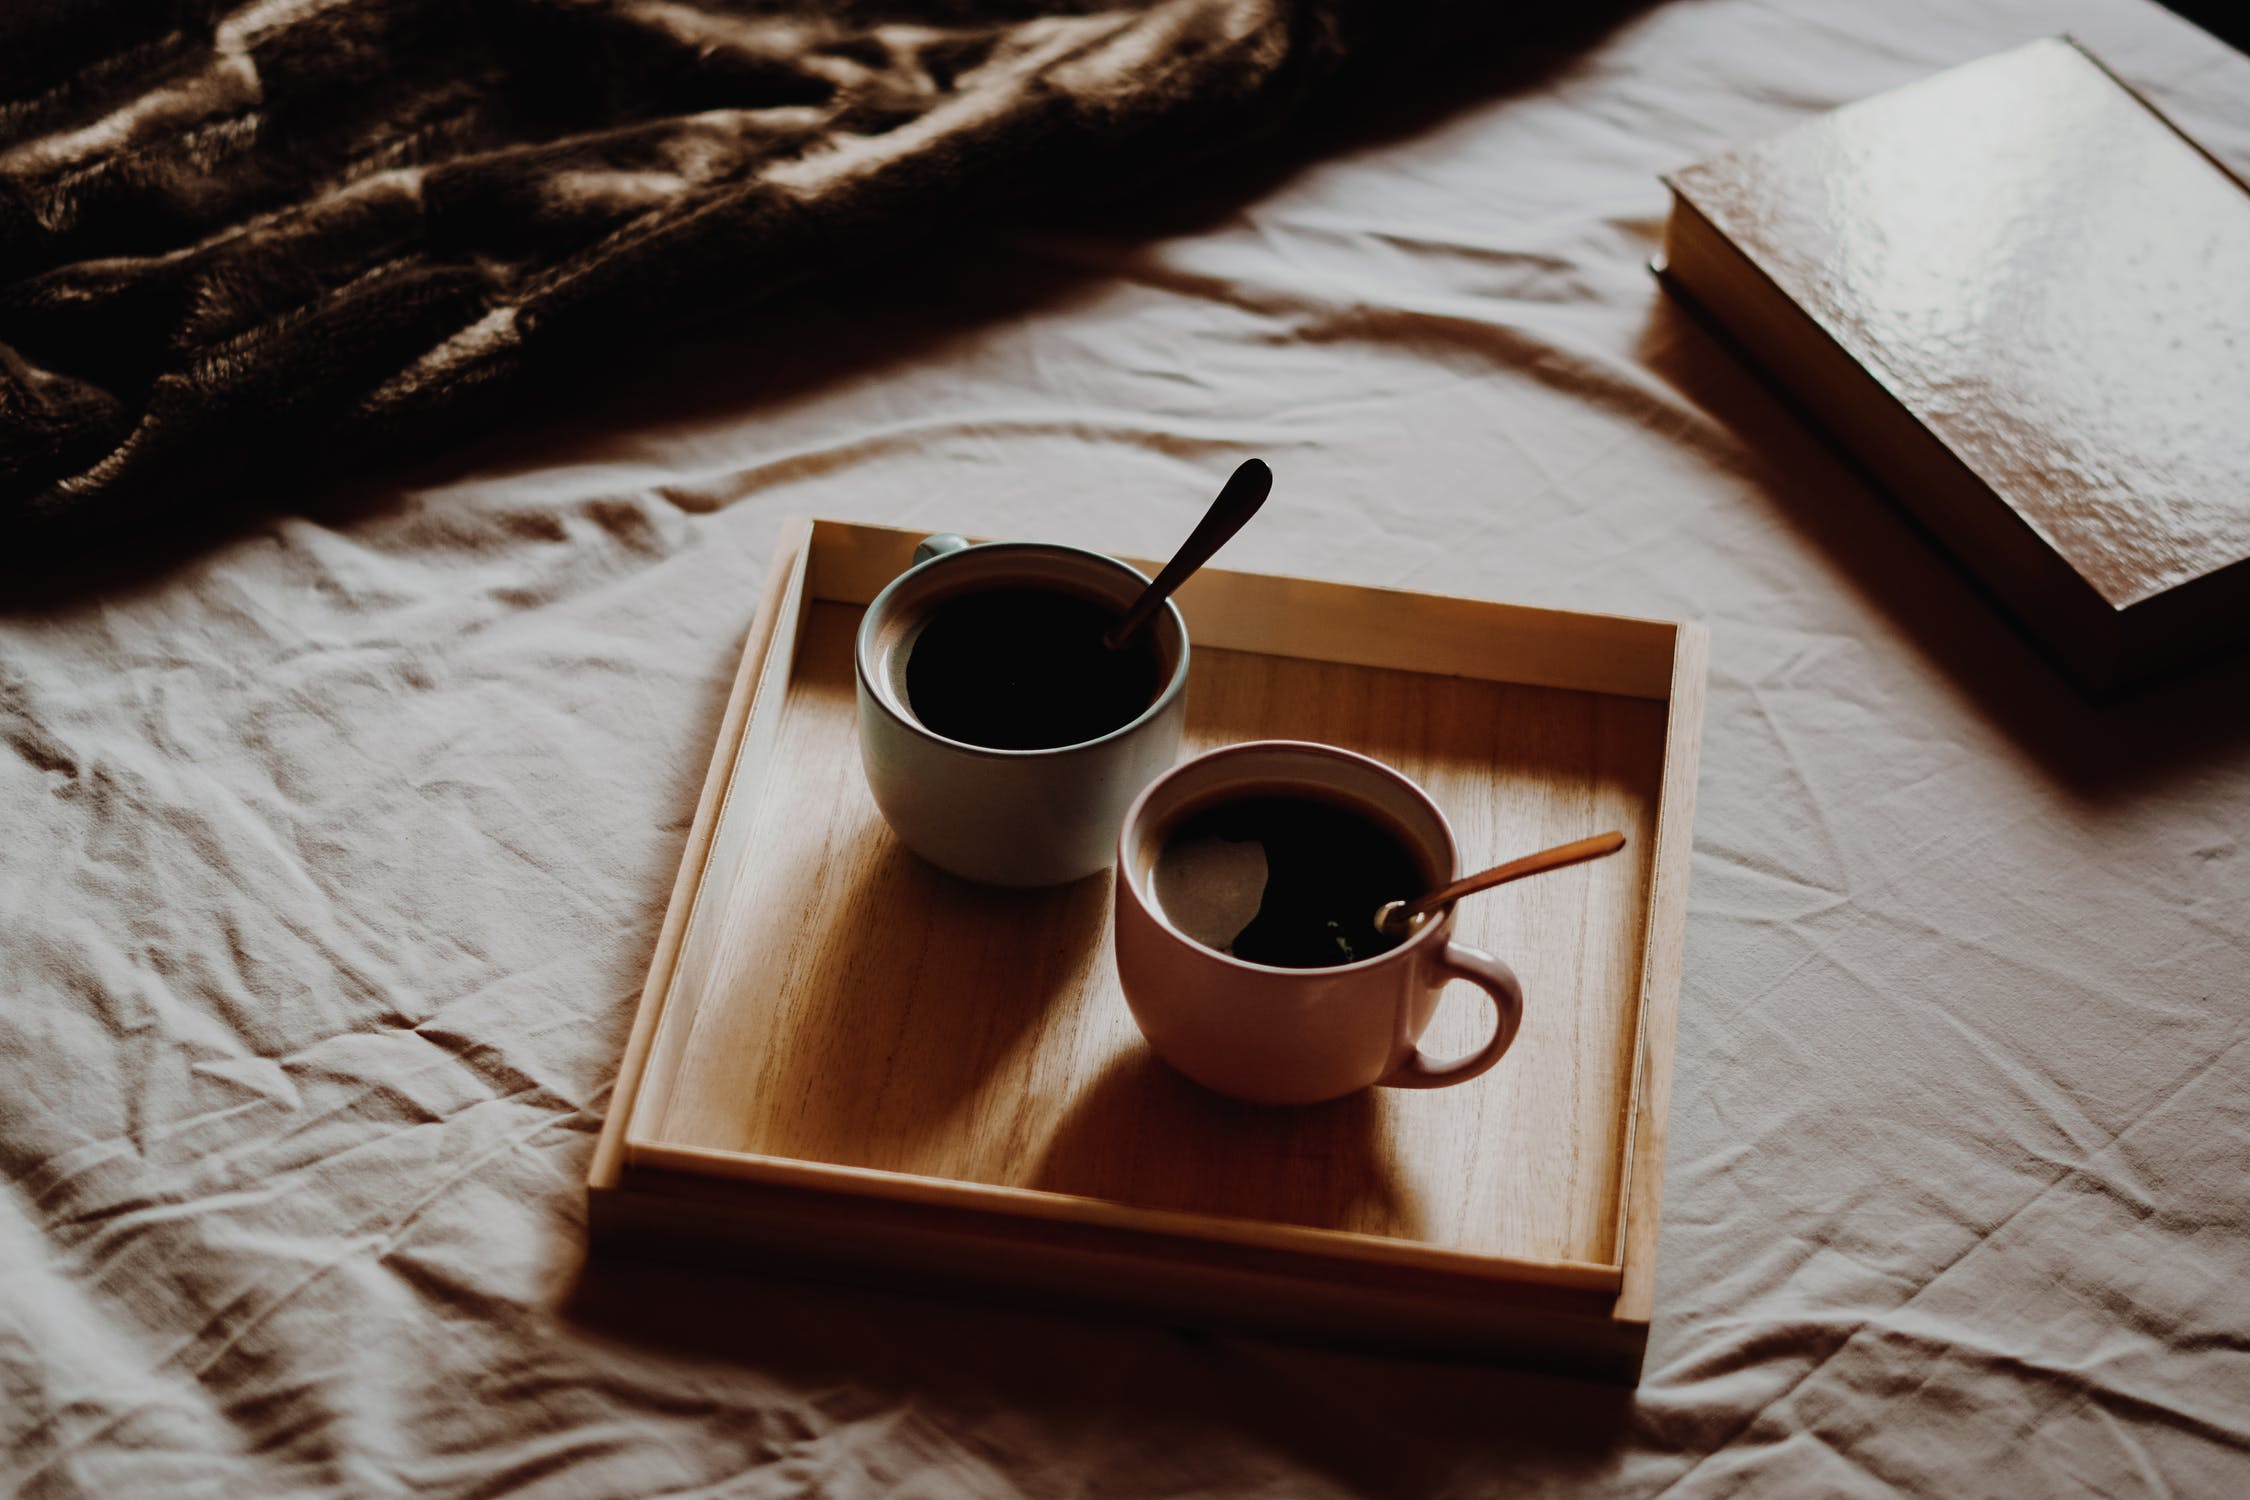 2 cups of coffee on a little platter next to a book